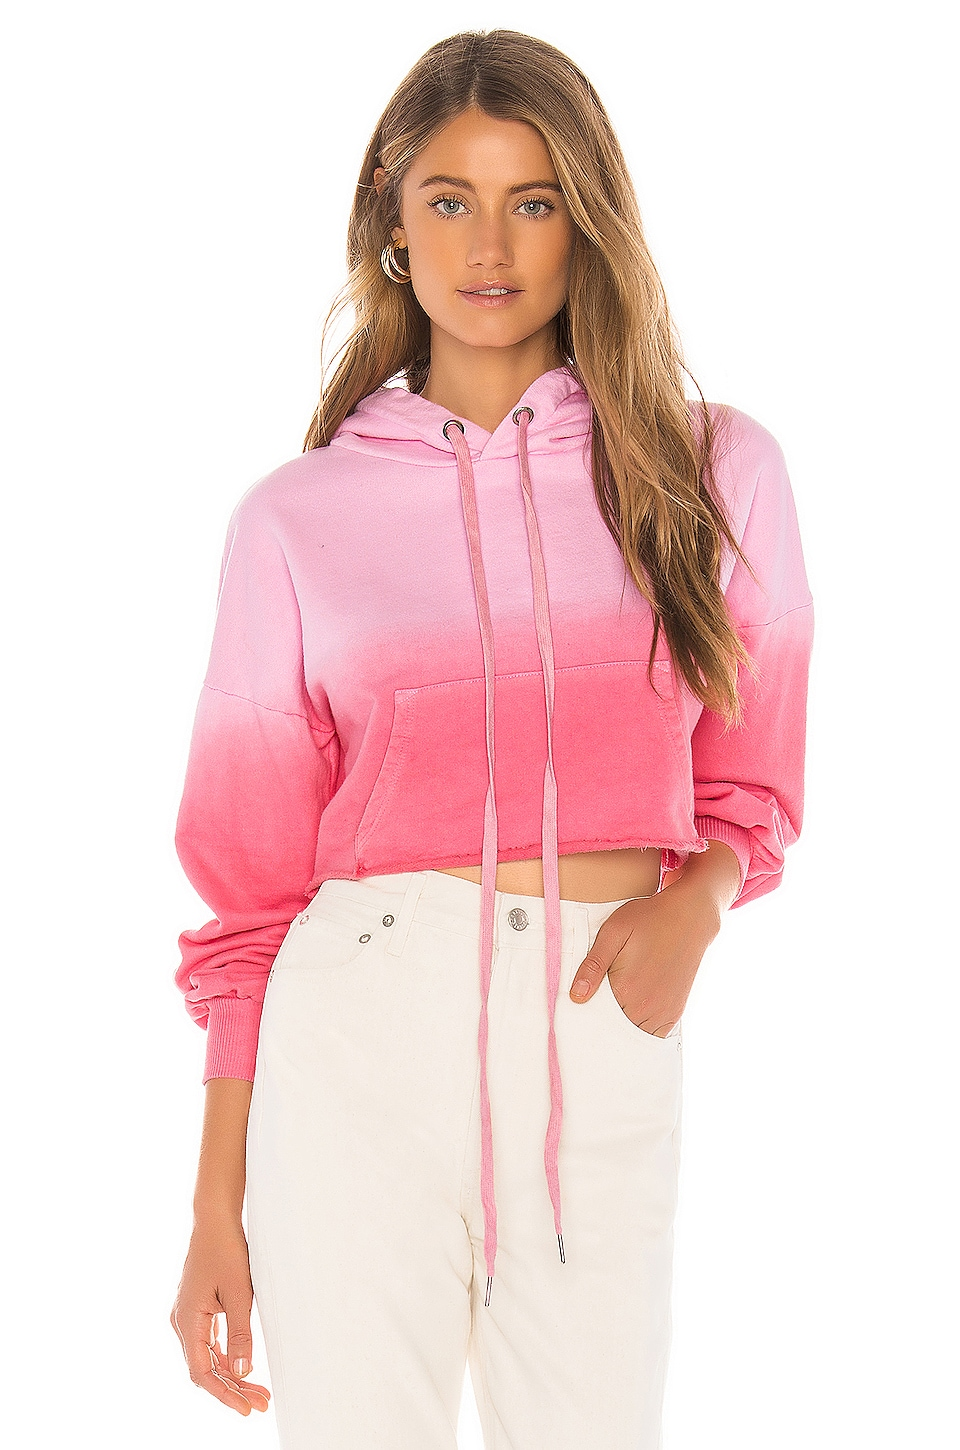 Lovers + Friends Sammy Cropped Hoodie in Pink Ombre